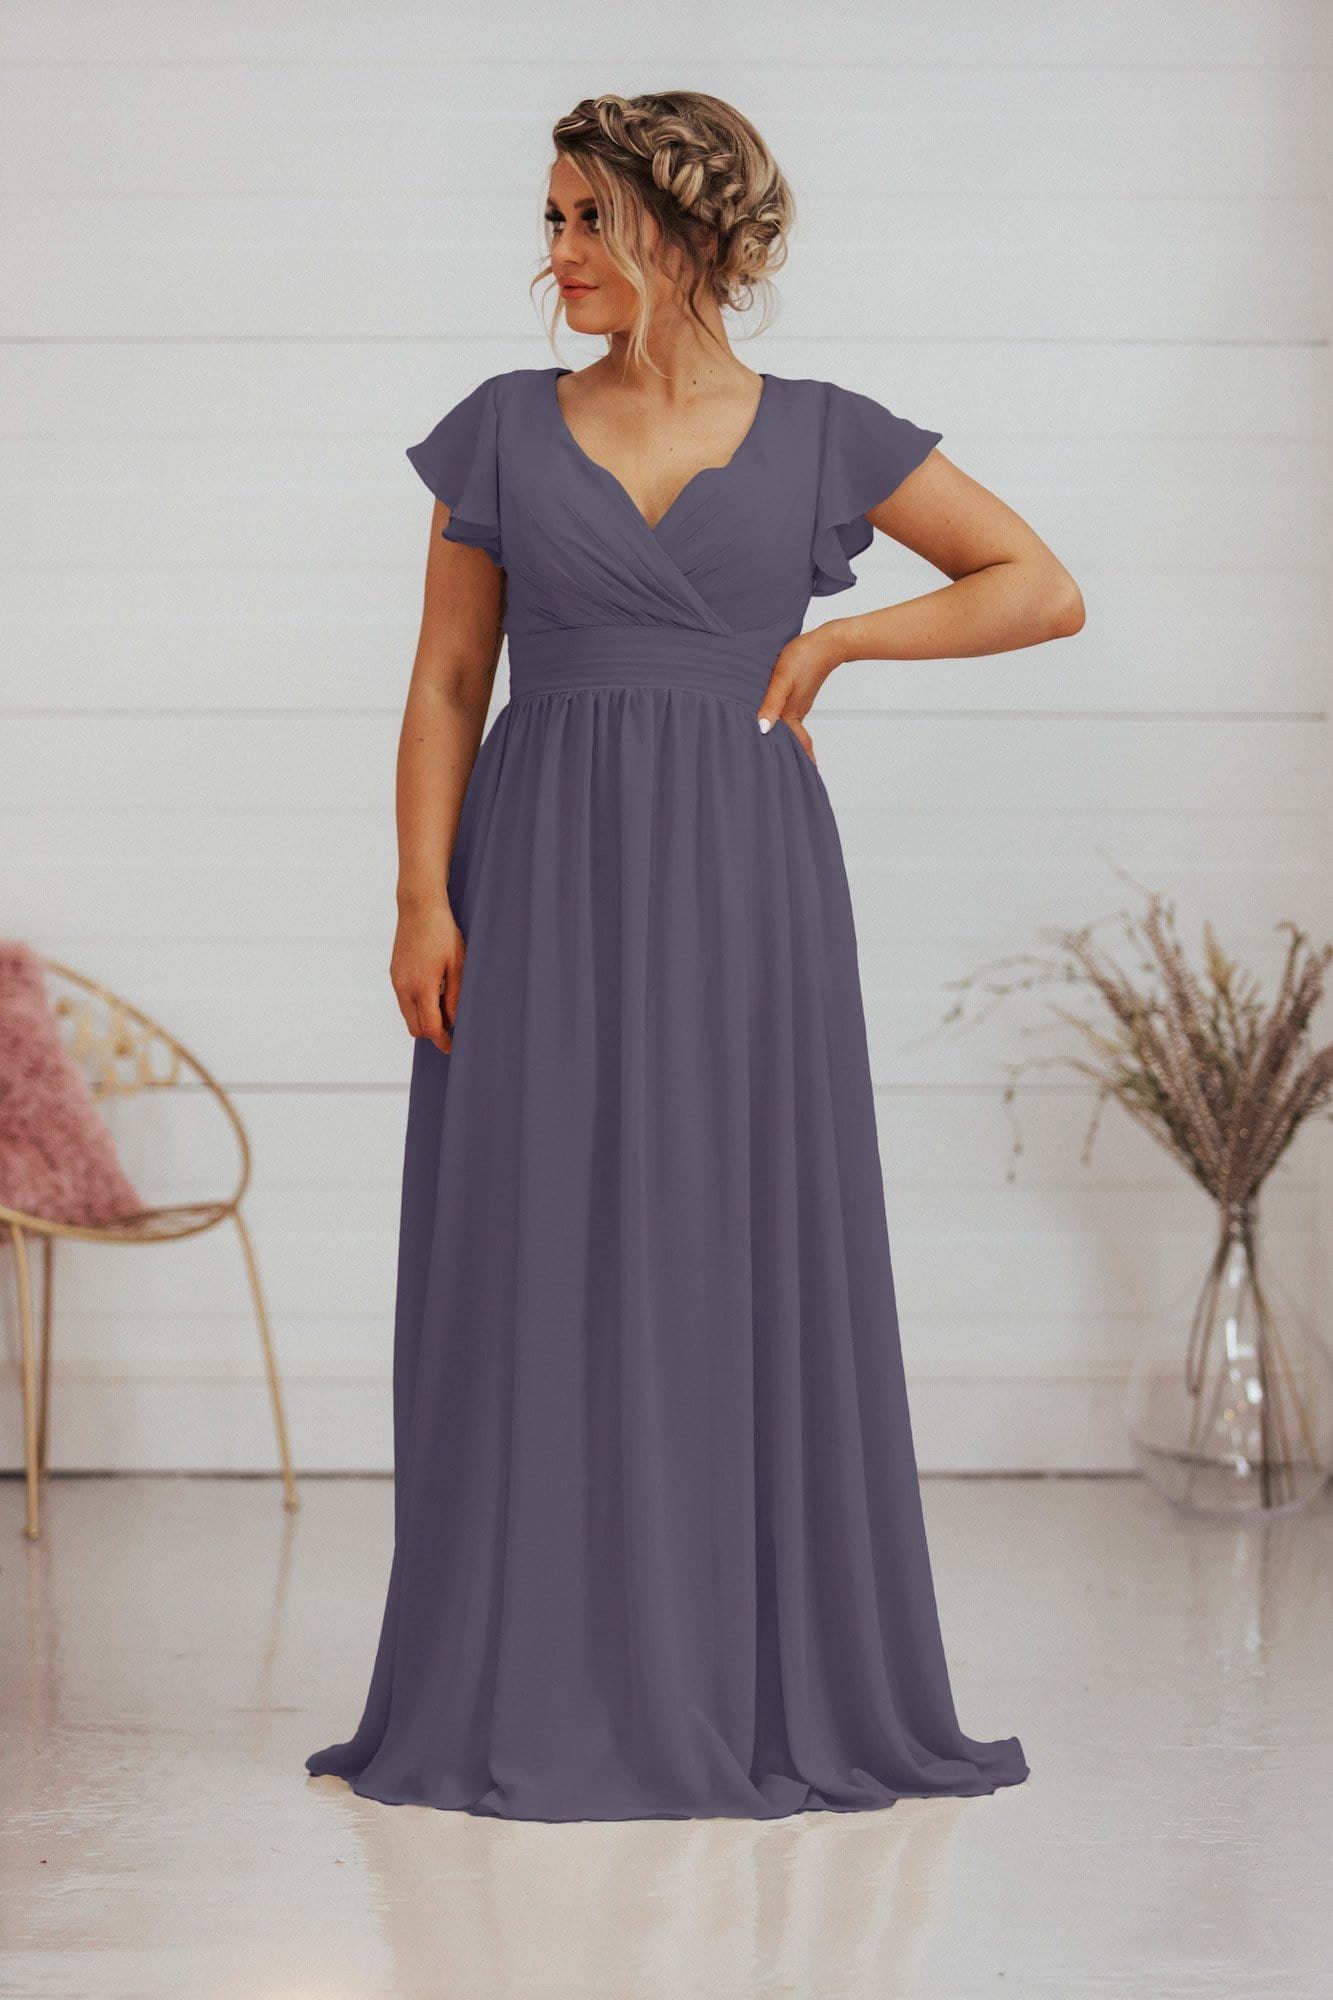 Corey Dress | Capped Sleeve A Line Bridesmaid Dress - That Special Day Bridal Warehouse